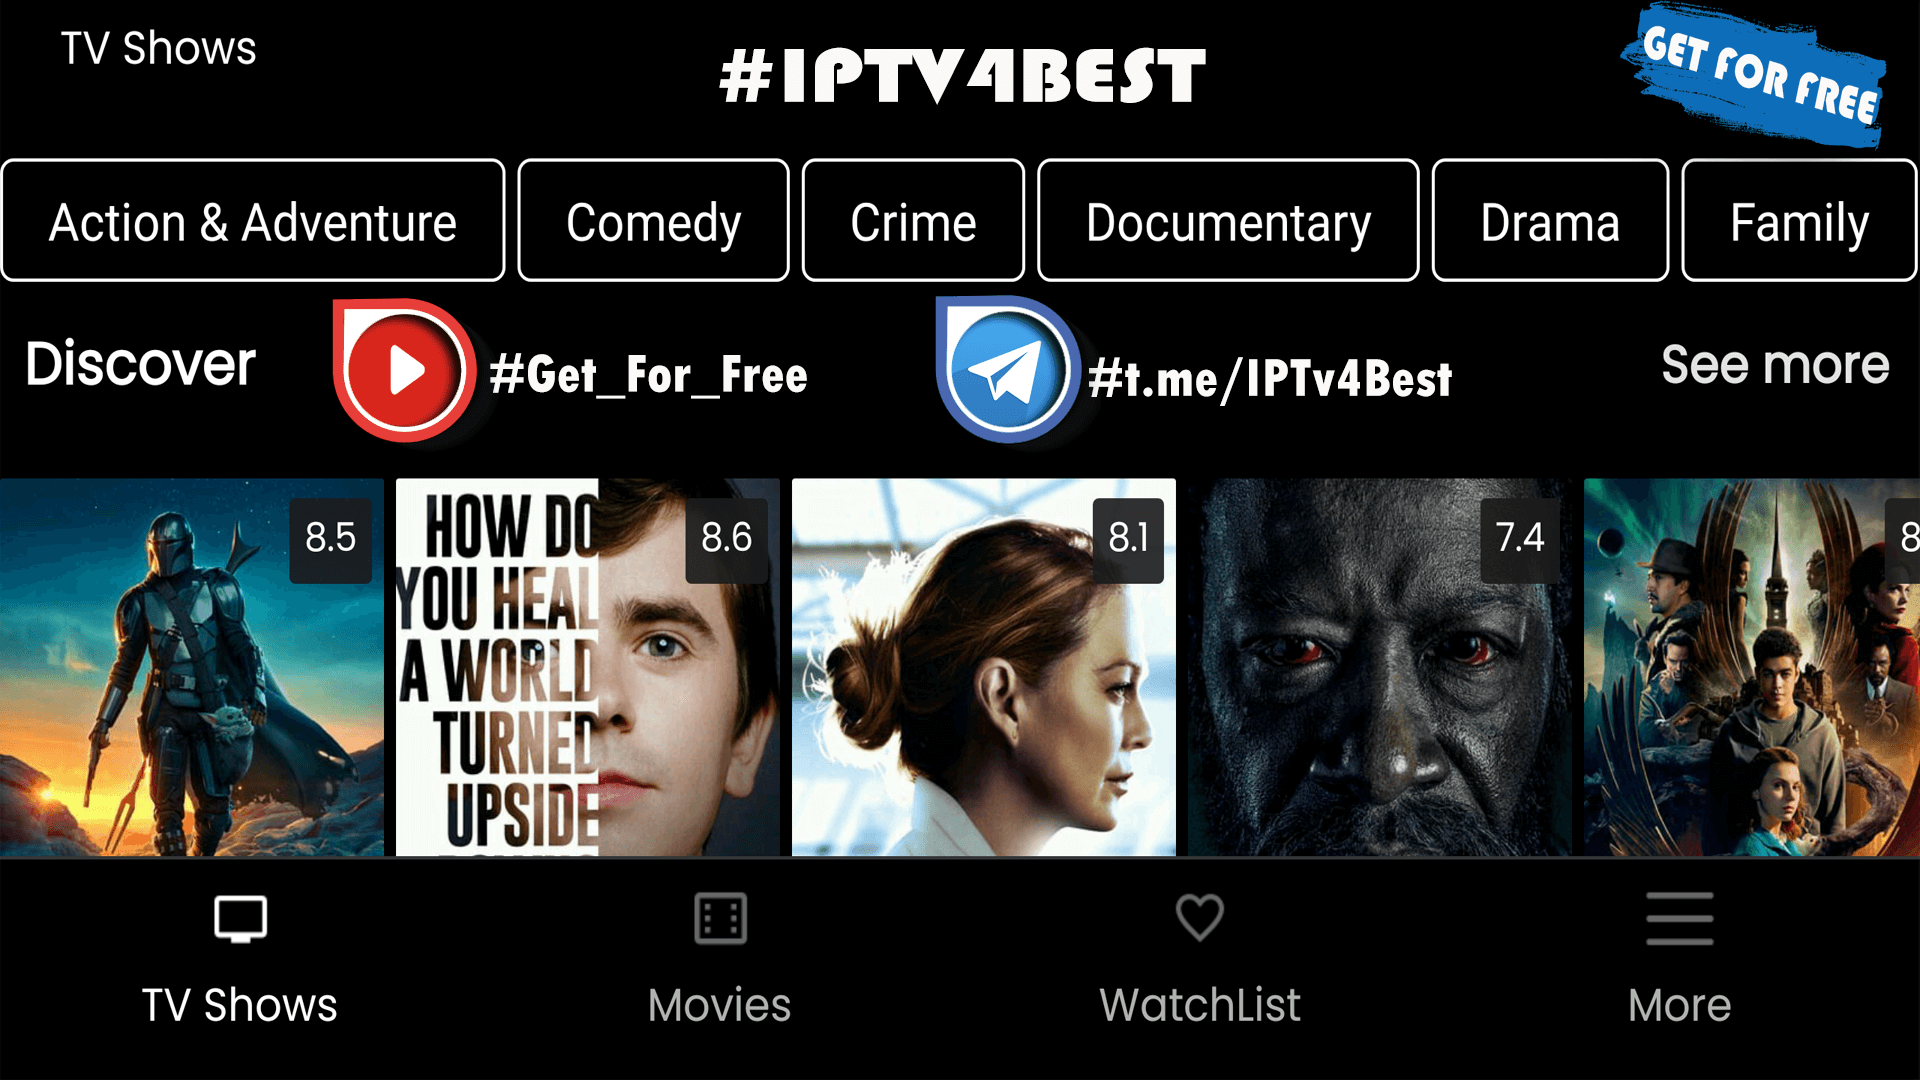 Nova Tv APK Movies Series Tv Show IPTv APK By IPTV4BEST